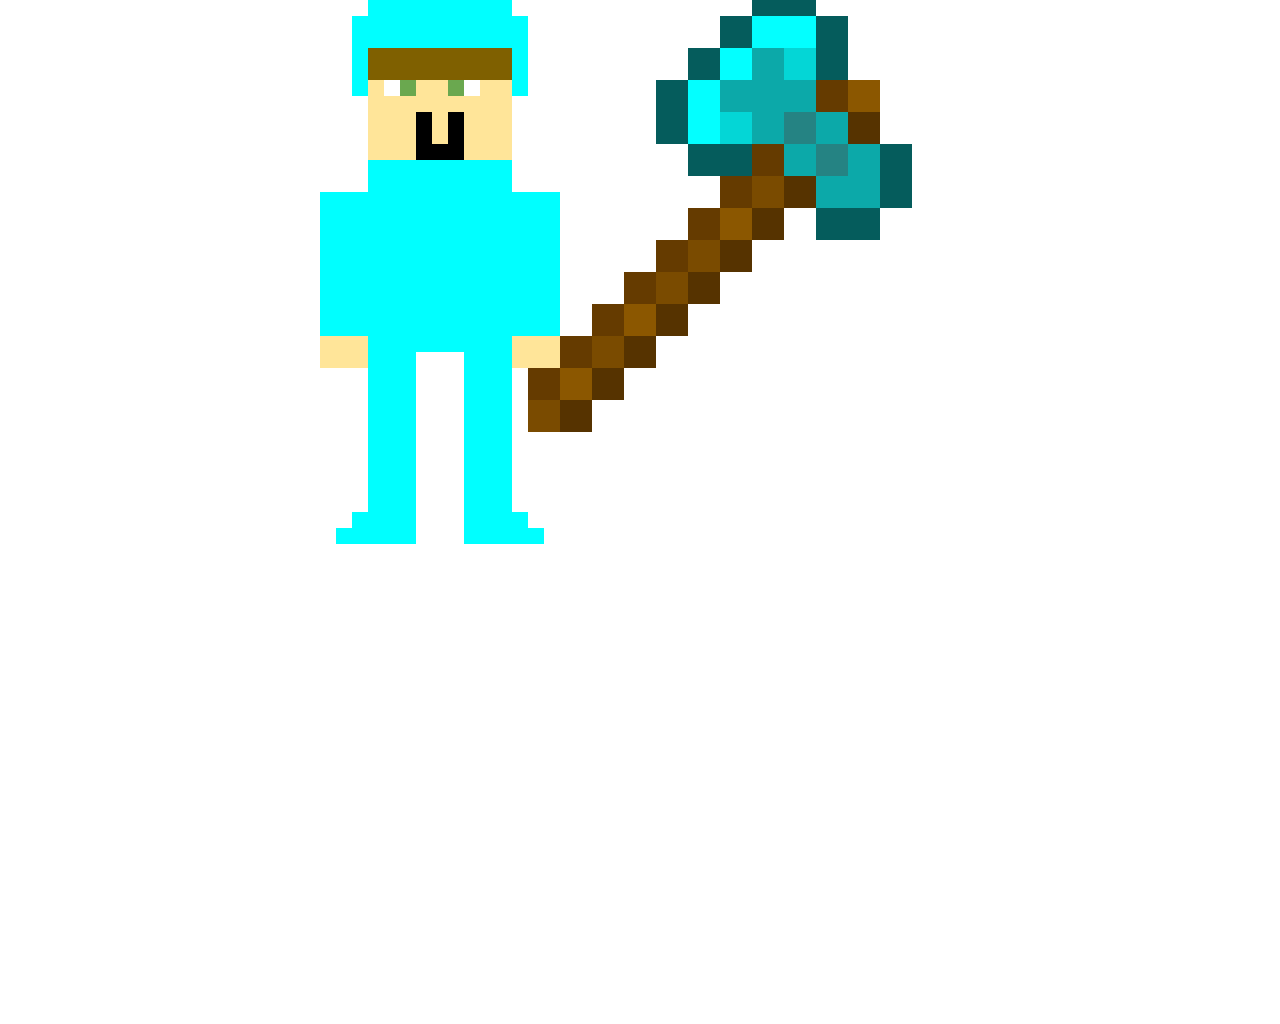 Baby steve in Diamond armor and a fatal weapon!